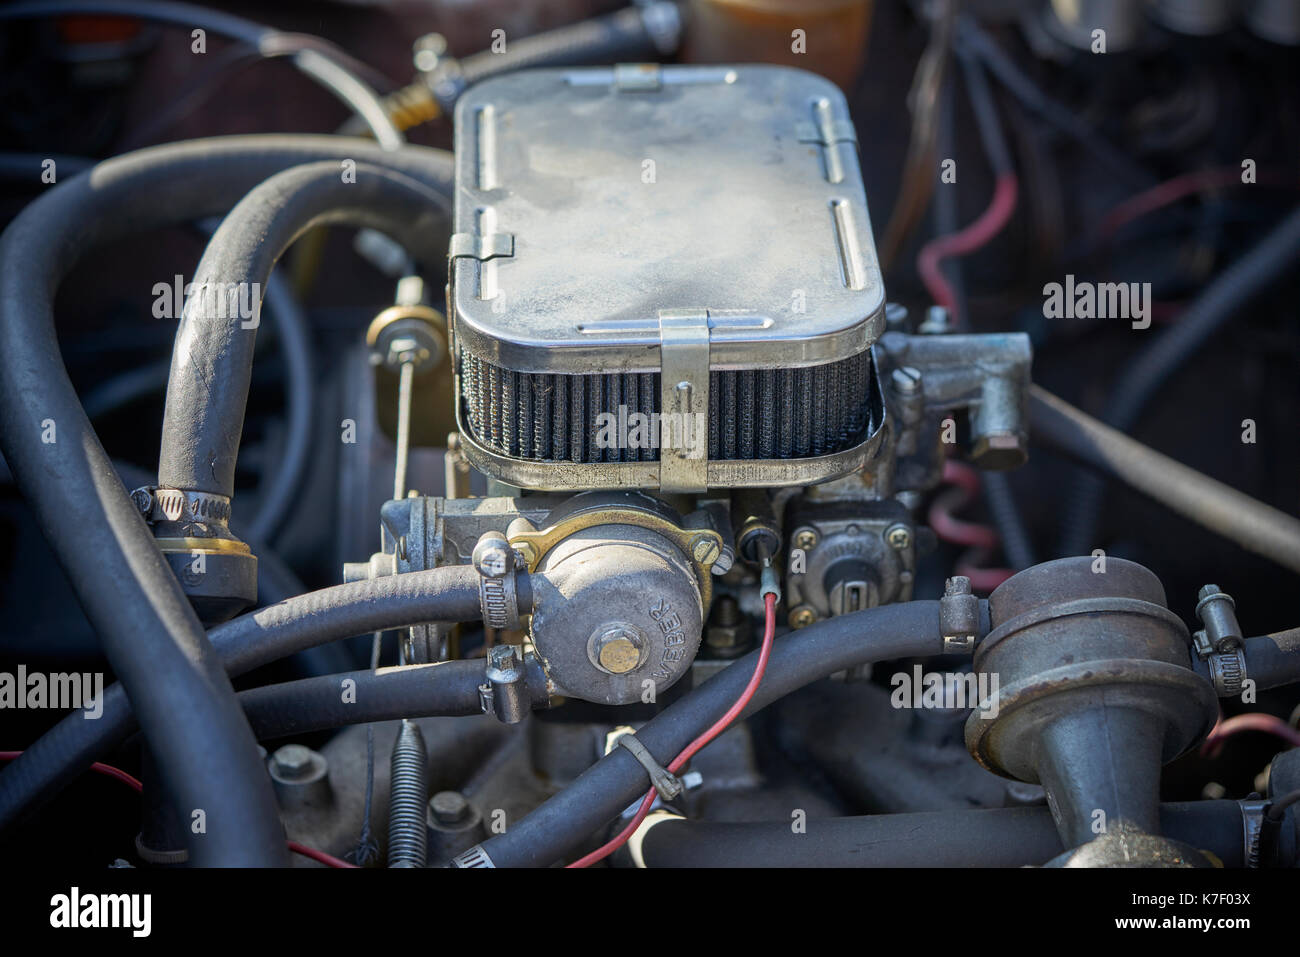 Bay Compartment Stockfotos & Bay Compartment Bilder - Alamy